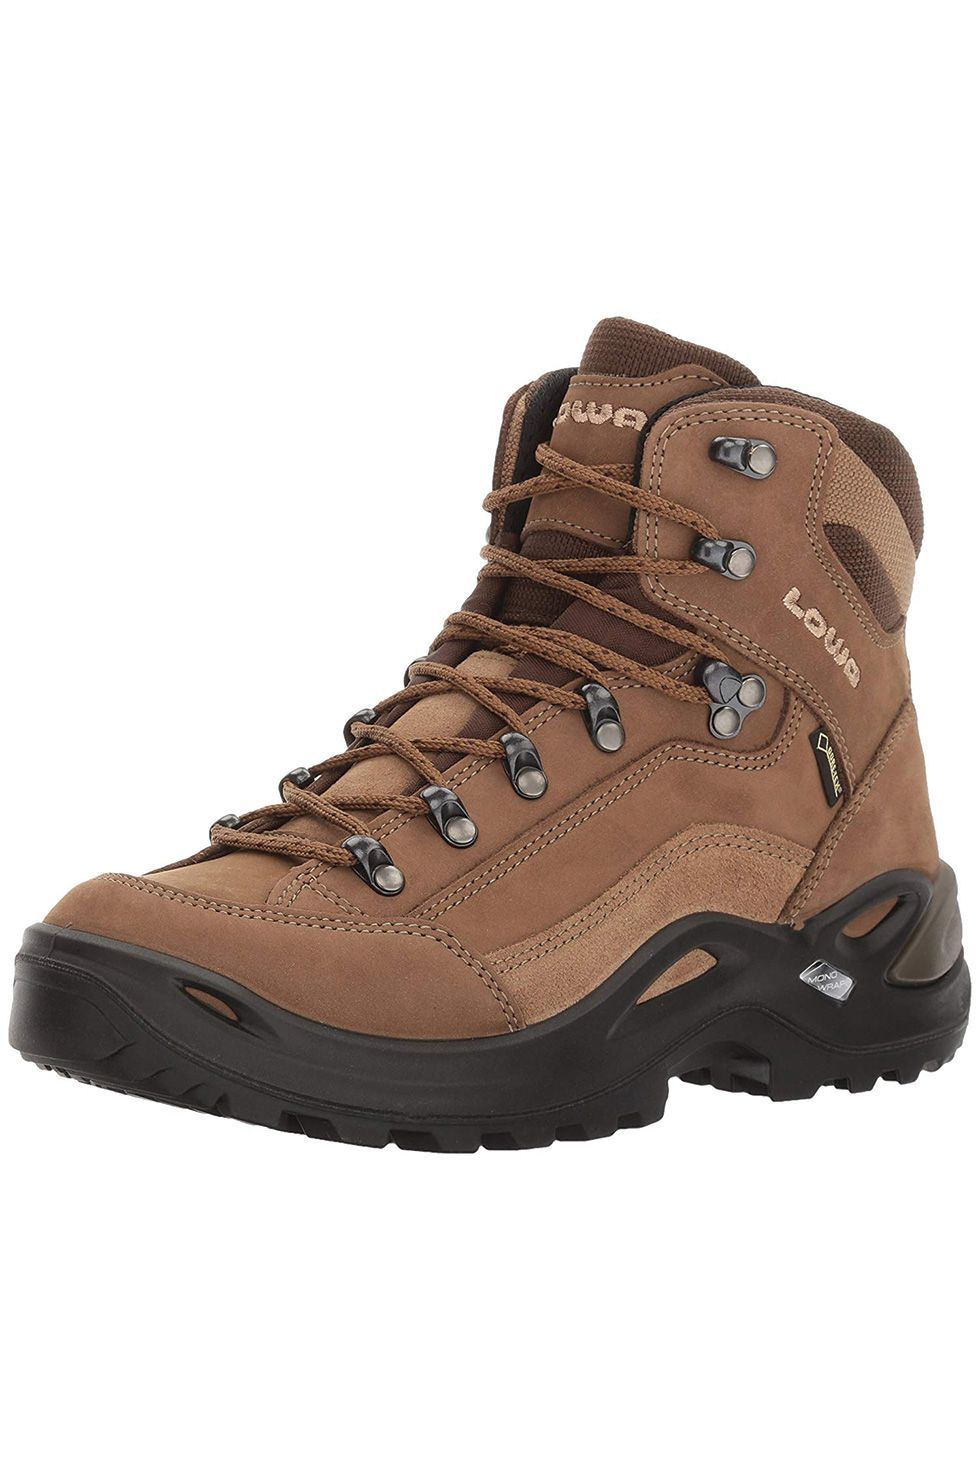 9 Hiking Boots That Wont Wreck Your Feet